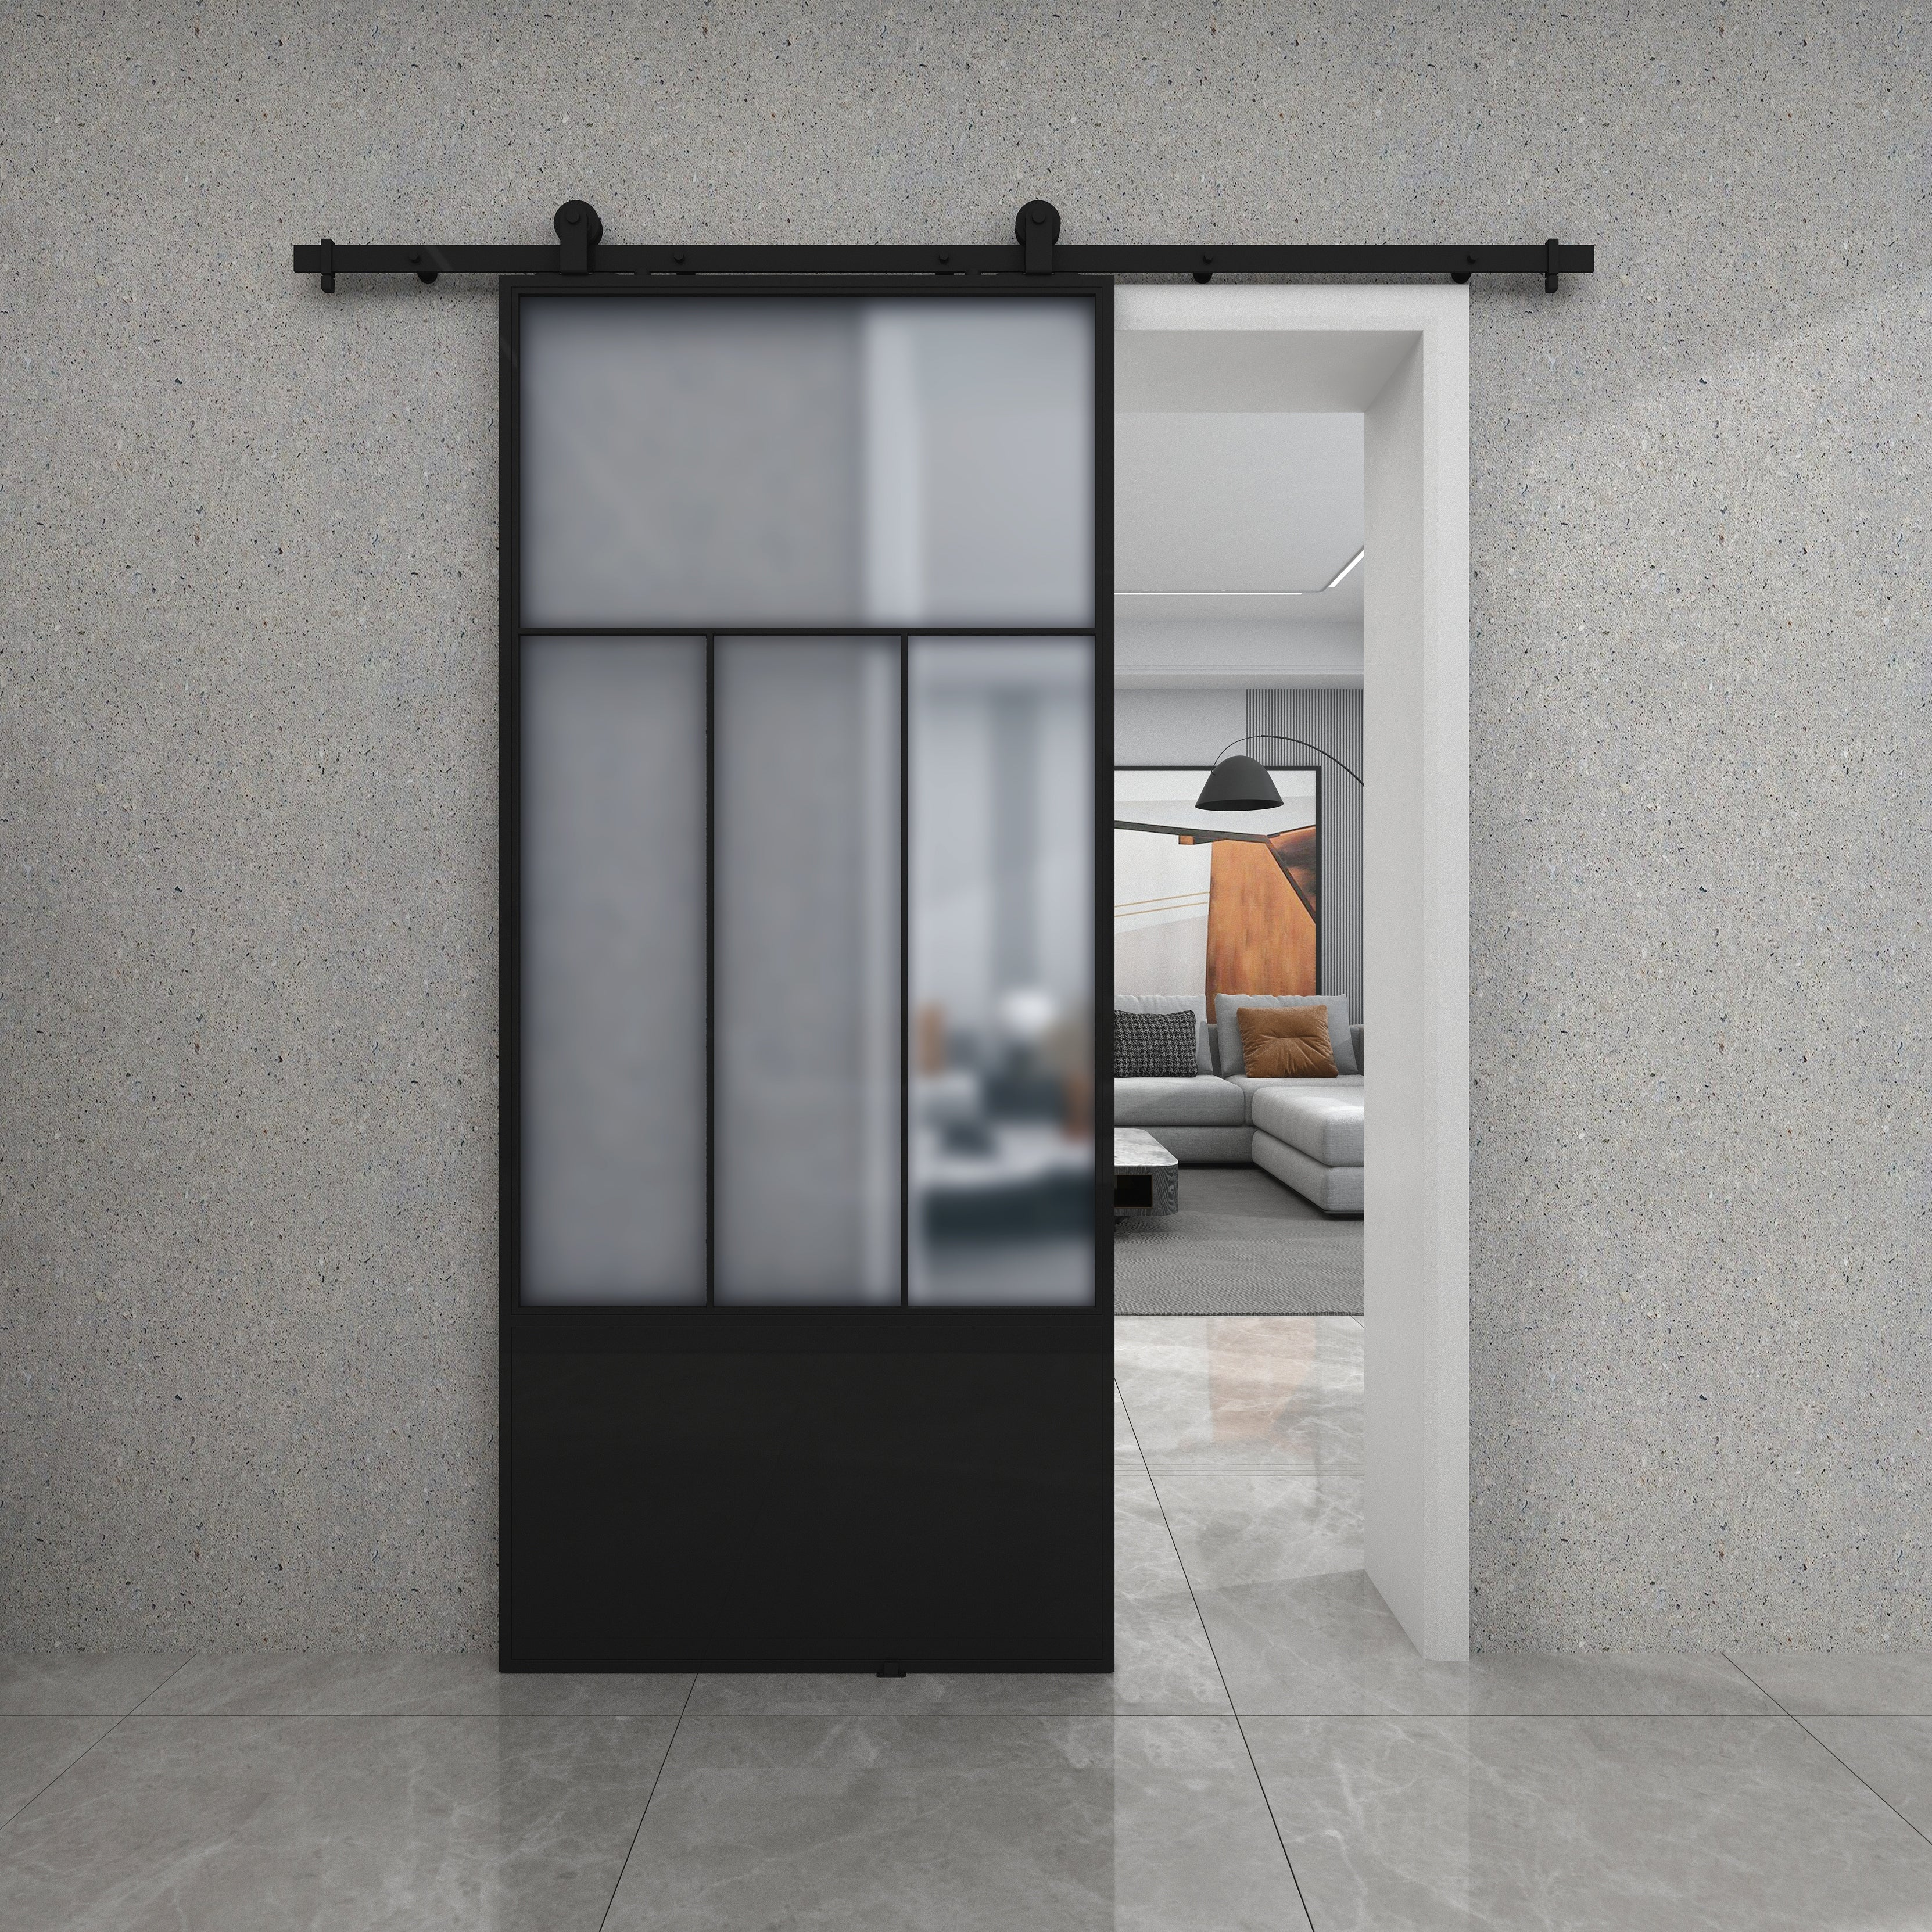 Division Frosted Glass Metal Barn Door With Installation Hardware Kit On Sale Overstock 31927399